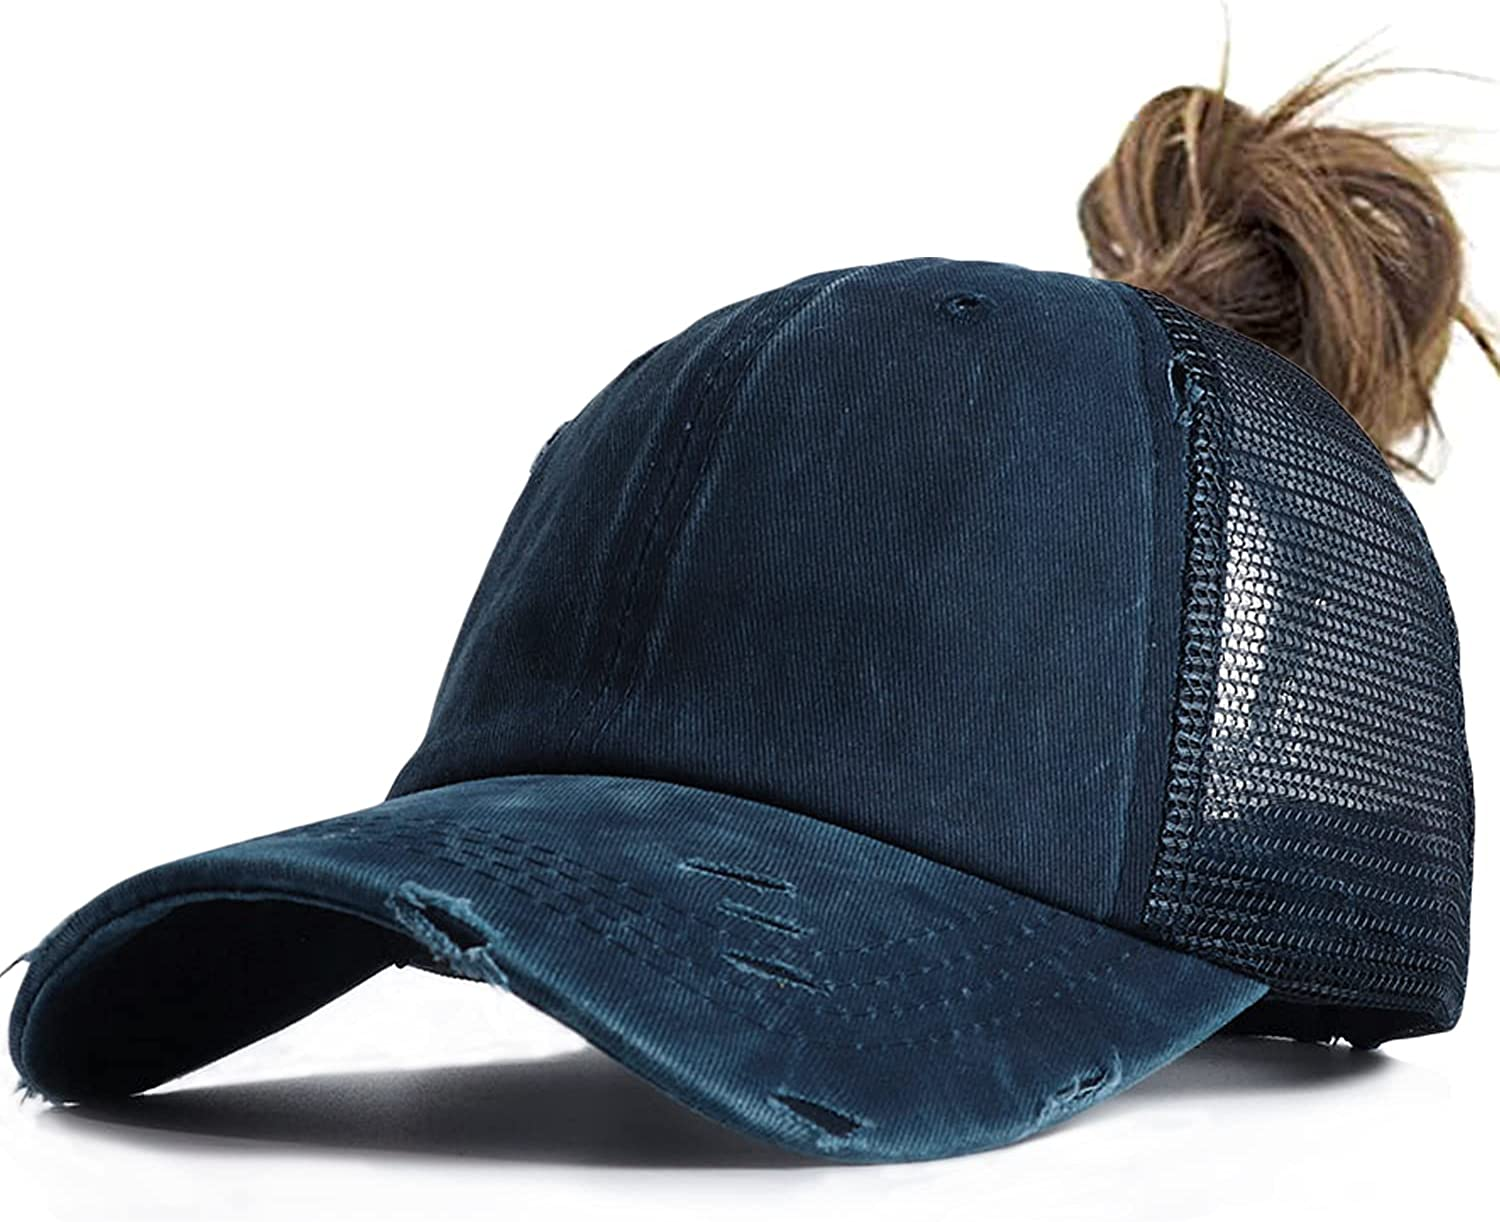 PonytailHat for Women High Ranking TOP8 Ponytail Cap Cross Indianapolis Mall Criss Baseball